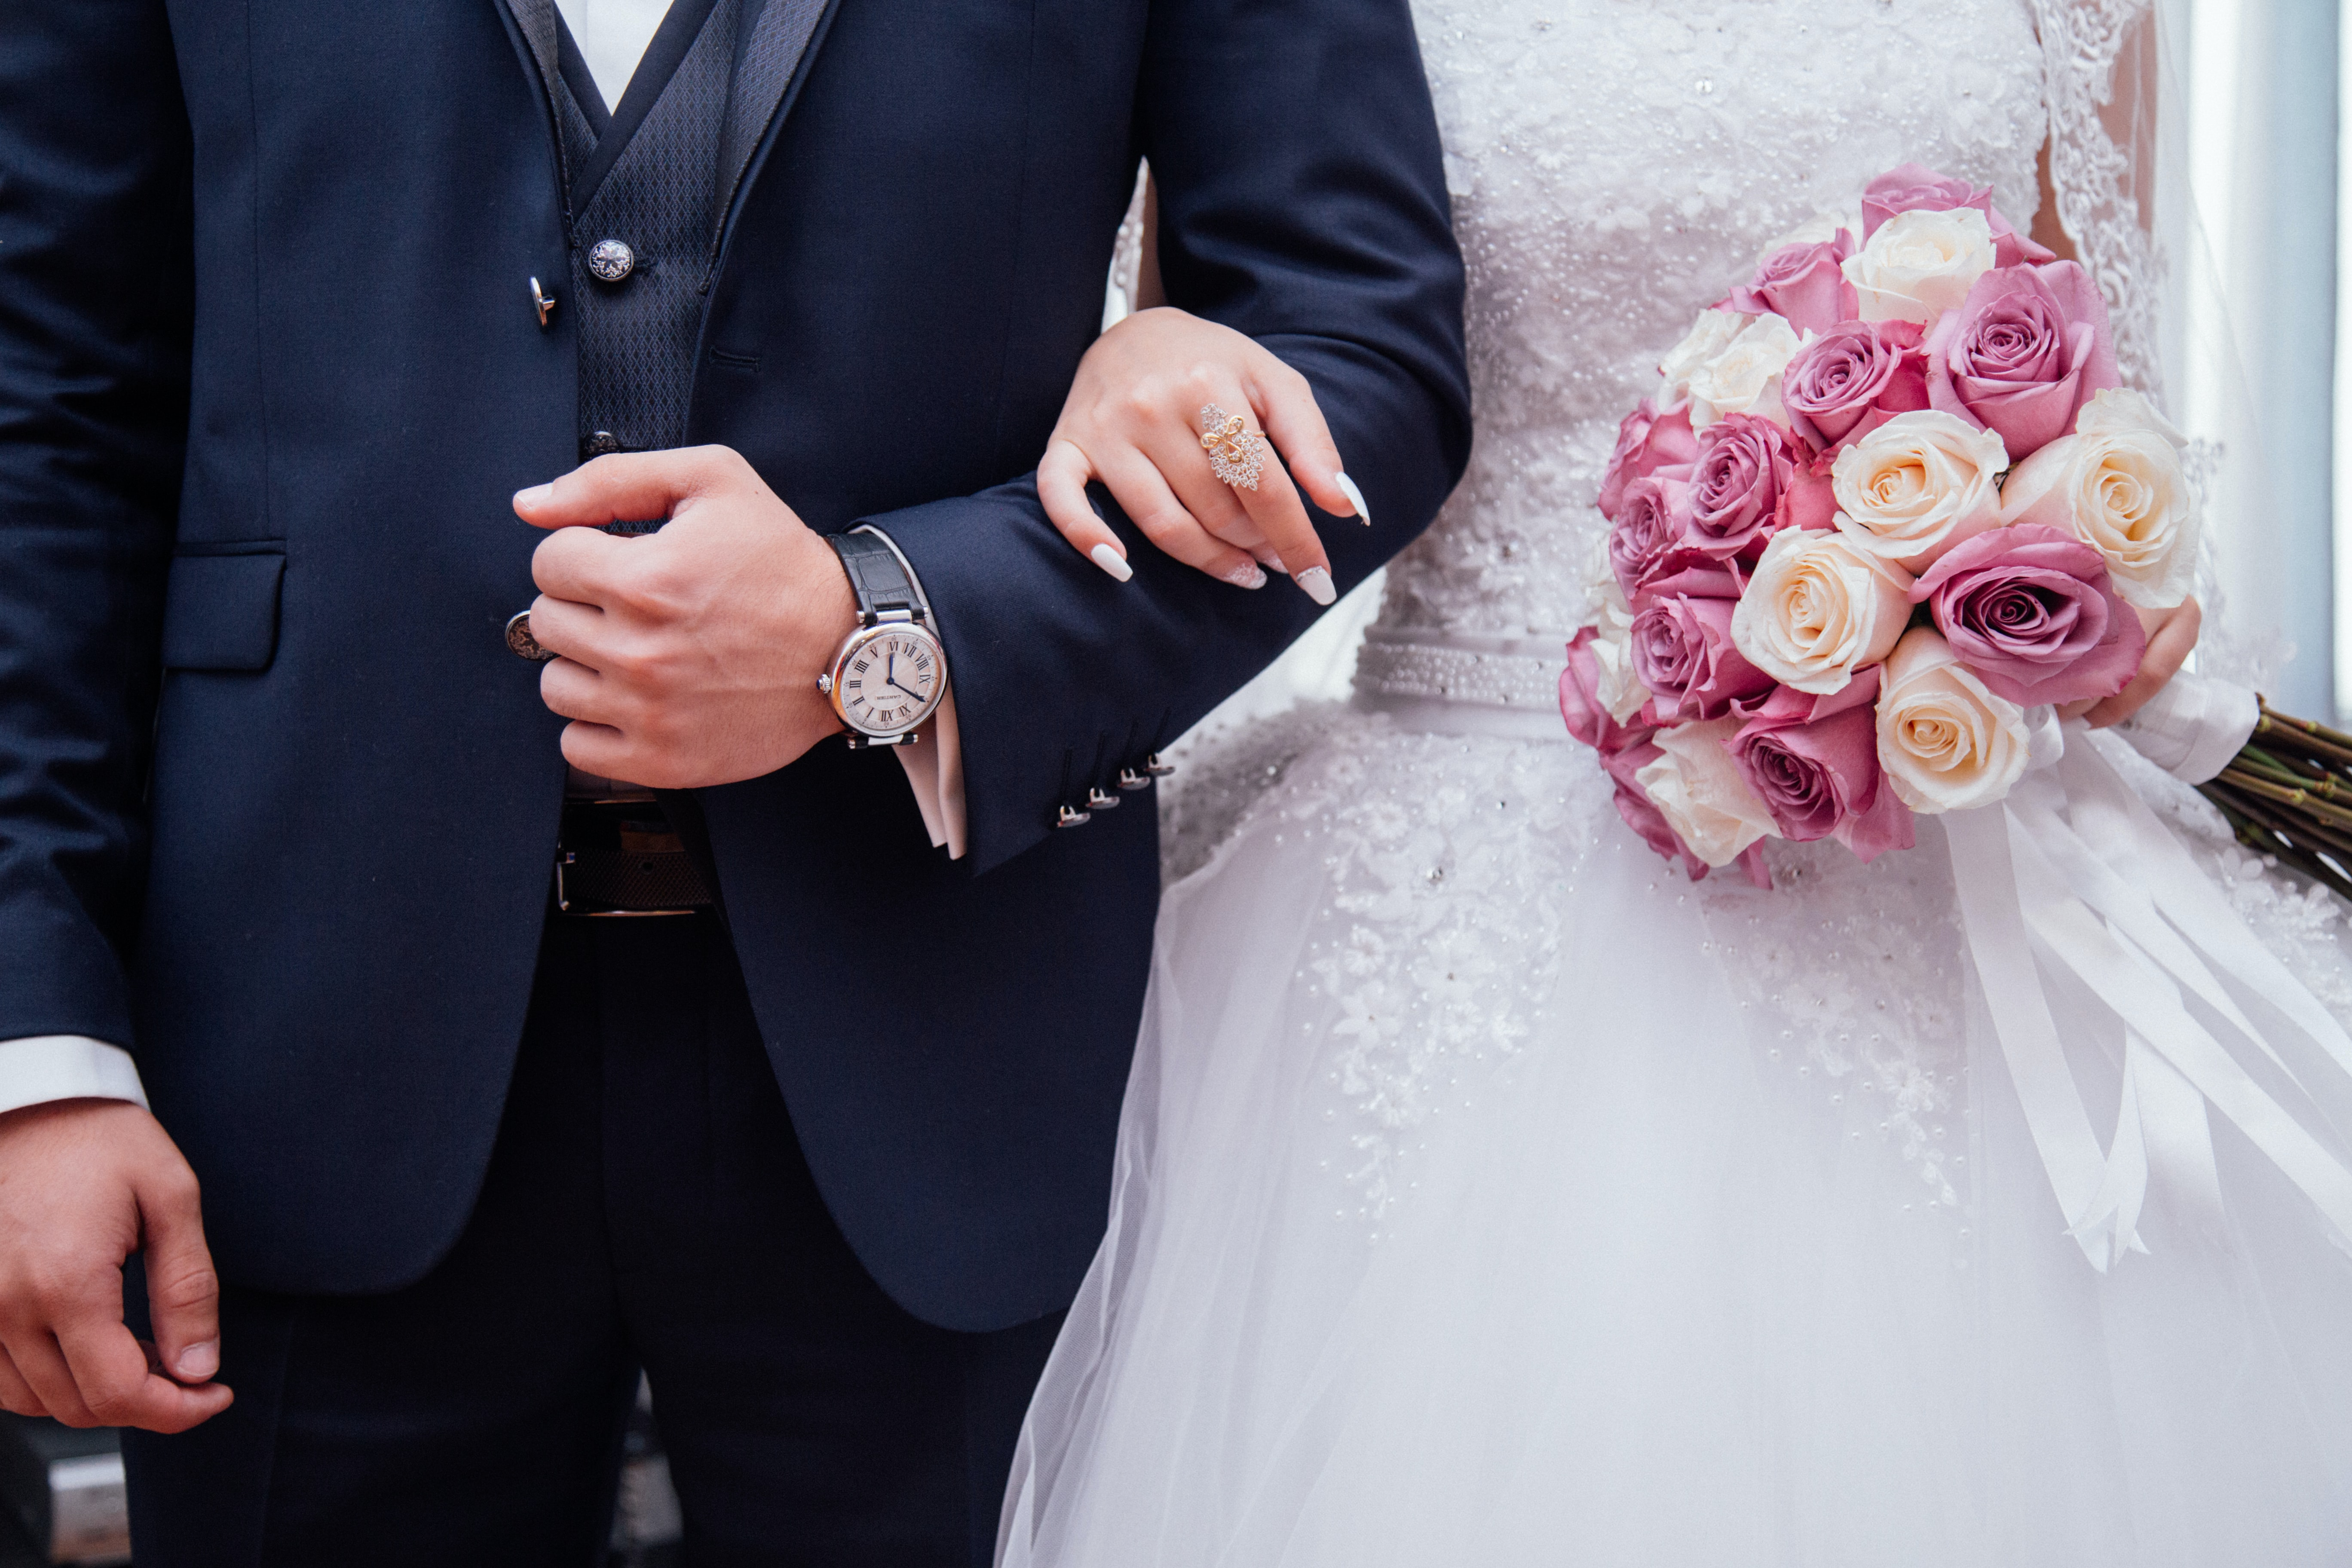 A bride holding a pink and white roses bouquet while holding arms with her husband.